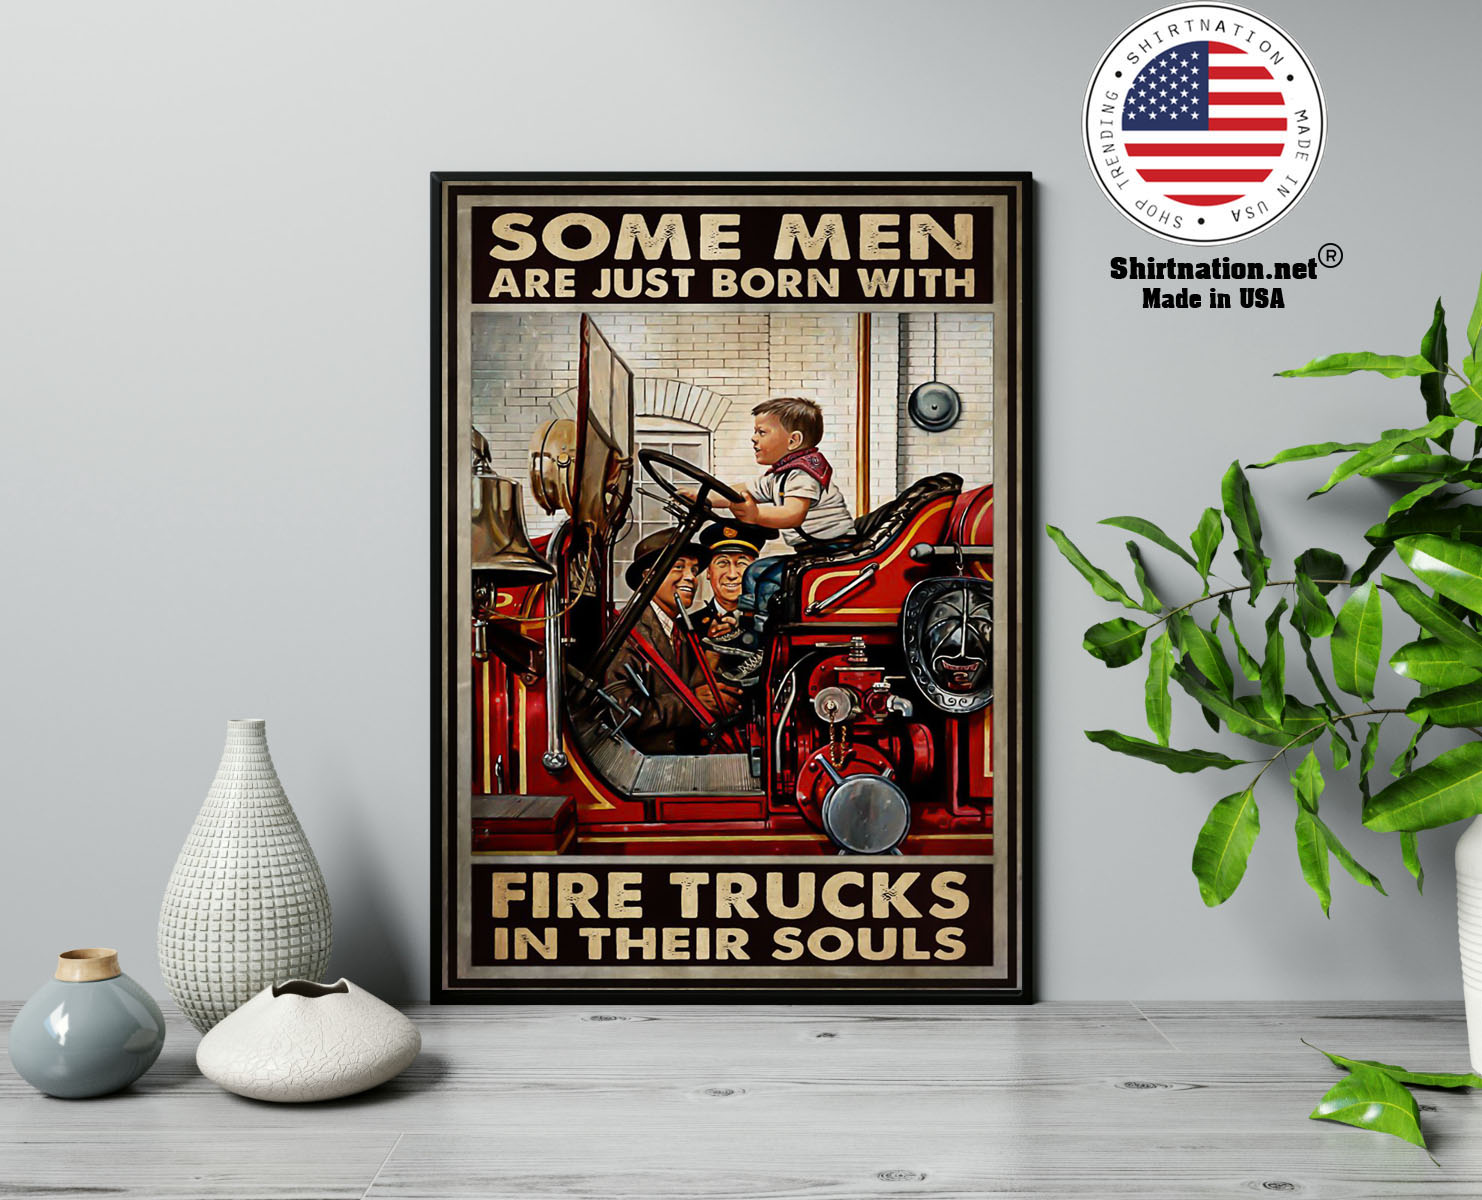 Some men are just born with fire trucks in their souls poster 13